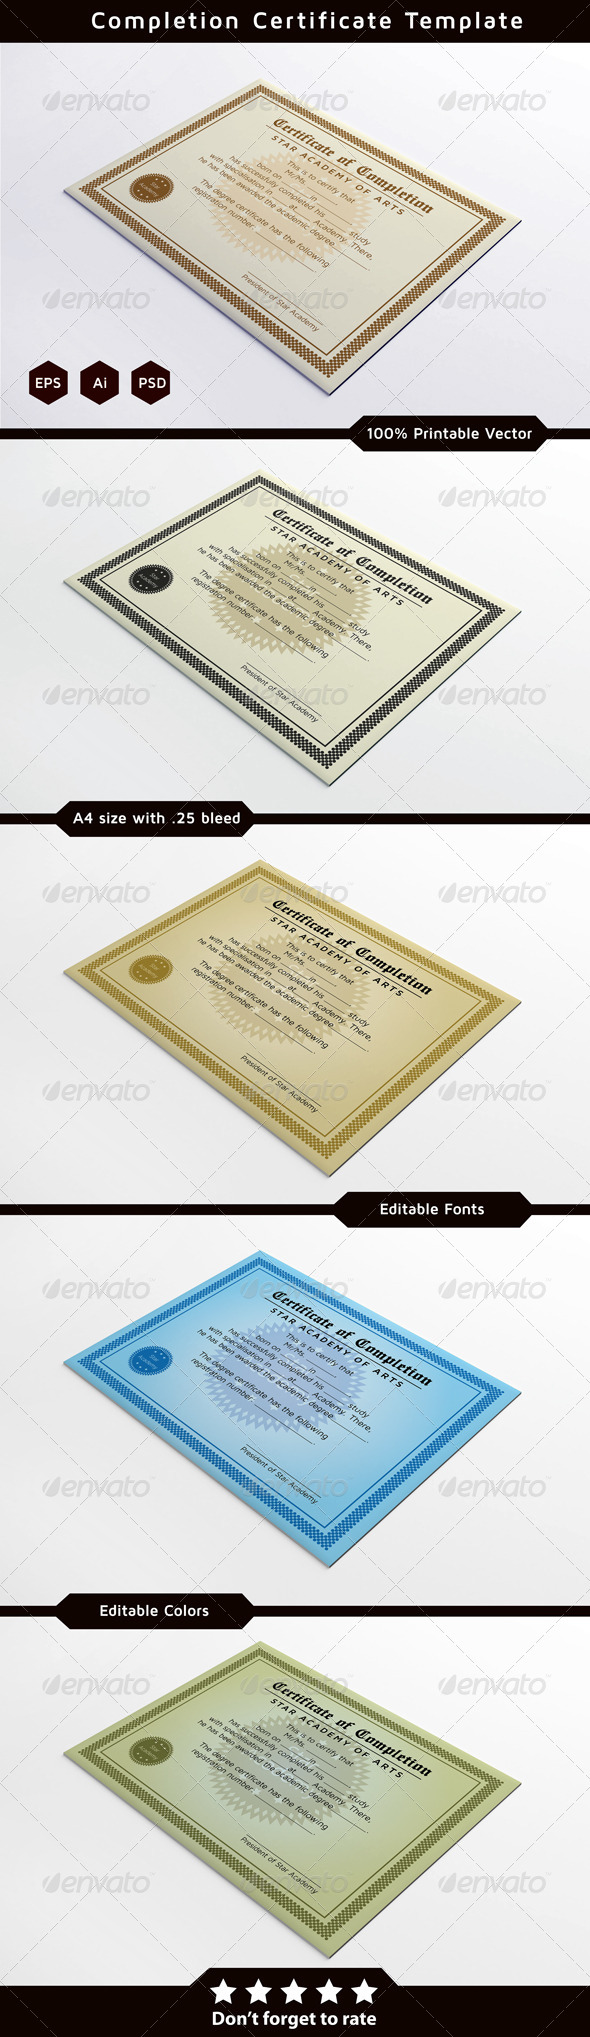 GraphicRiver Completion Certificates 5923637